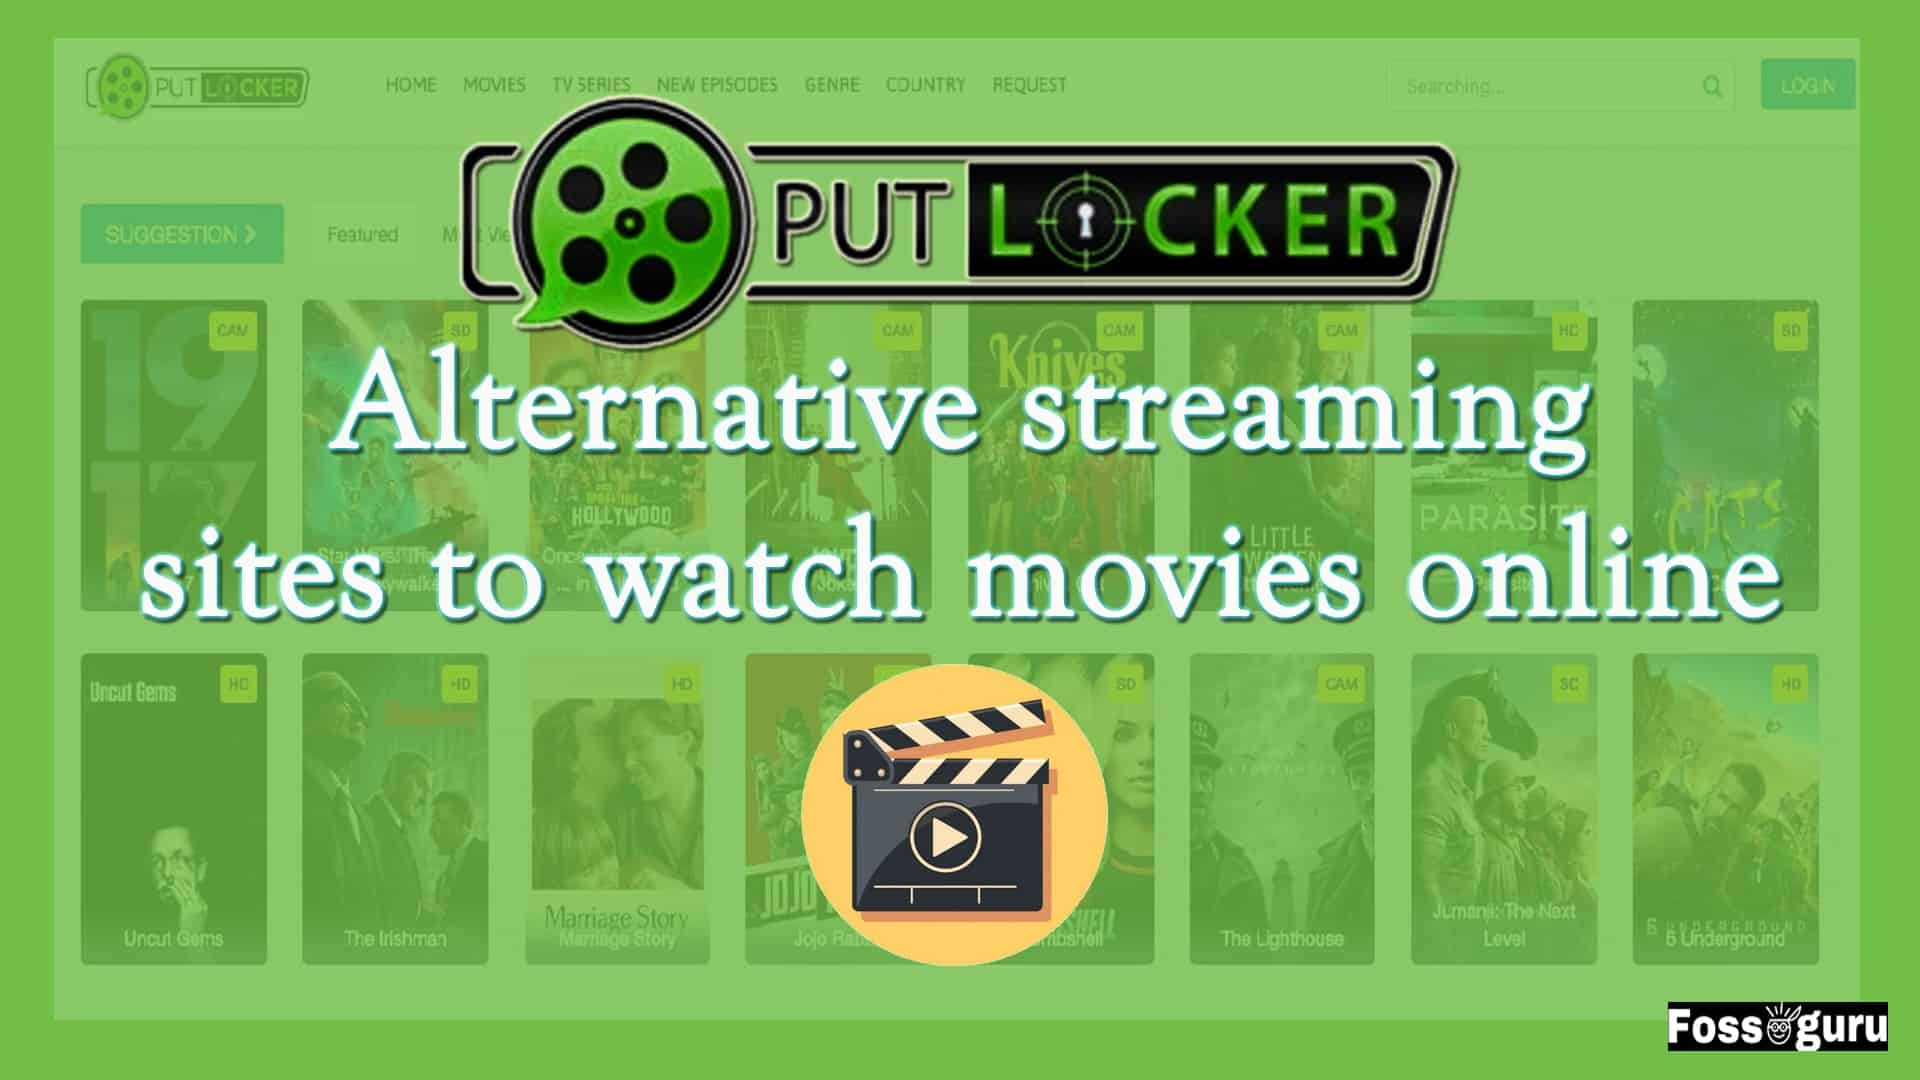 Putlocker alternatives streaming sites to watch movies online